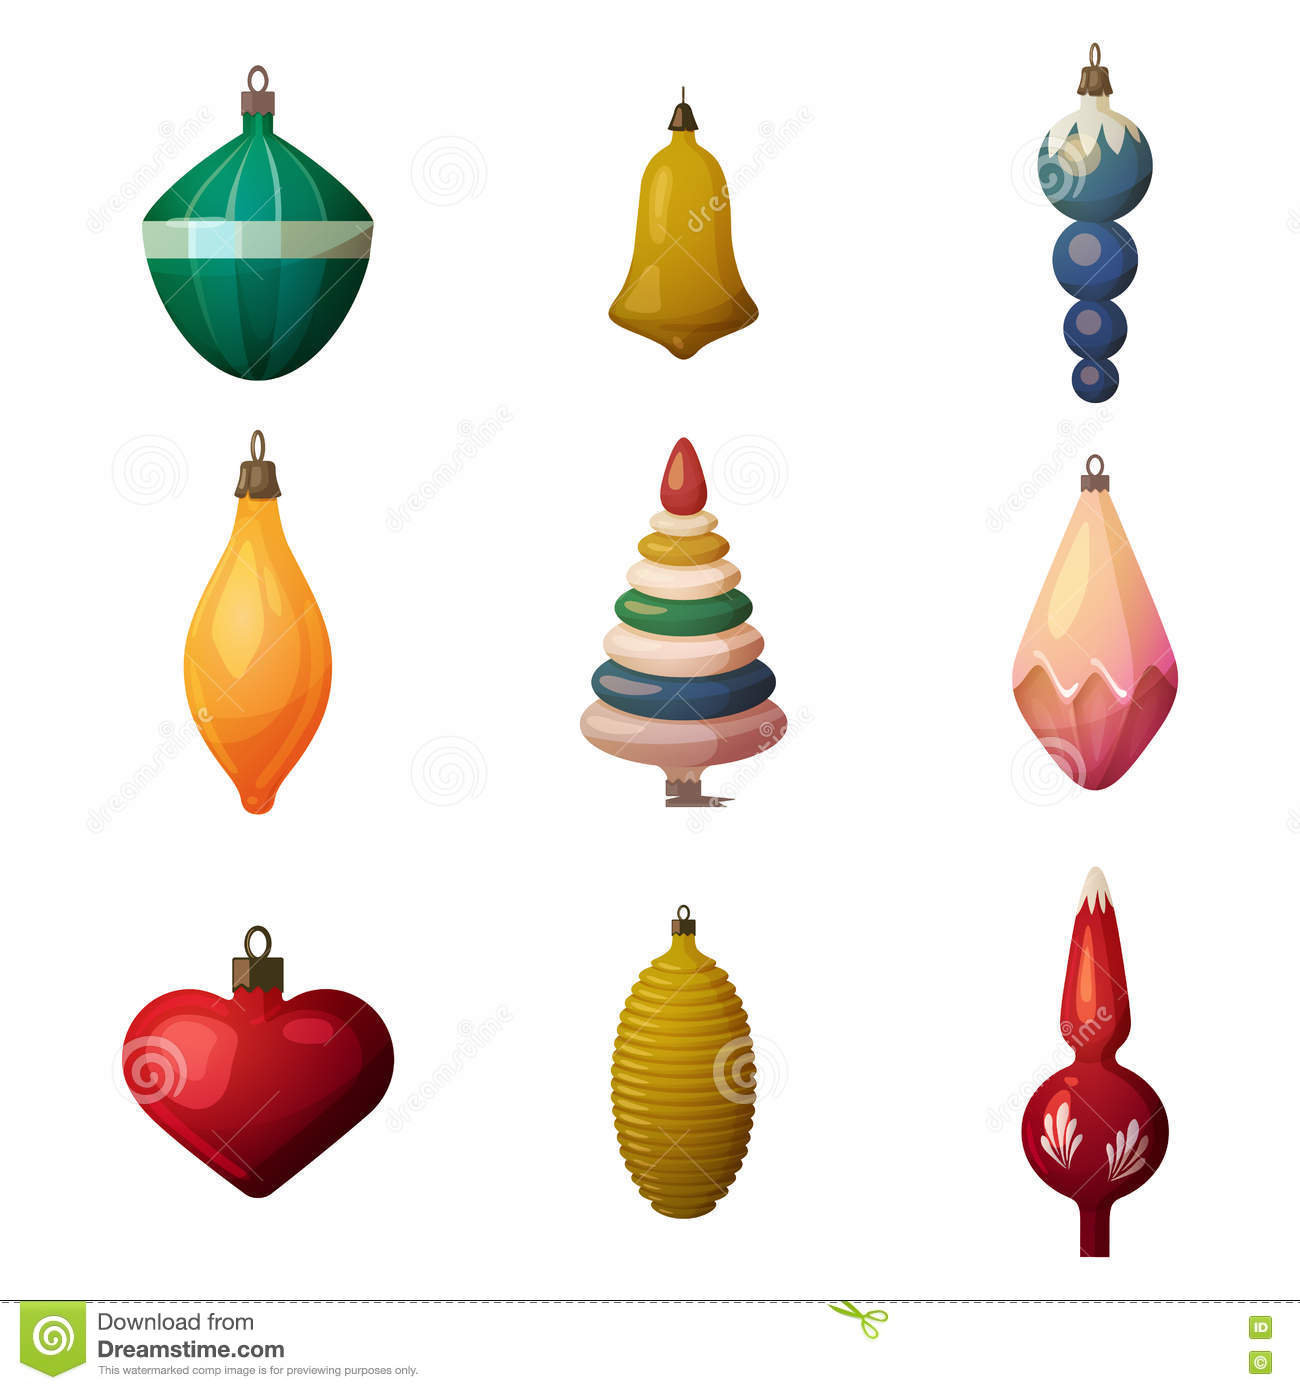 Glass heart christmas ornaments - 2017 Fir Tree Decoration Baubles And Bokeh Ornament New Year And Merry Christmas Or